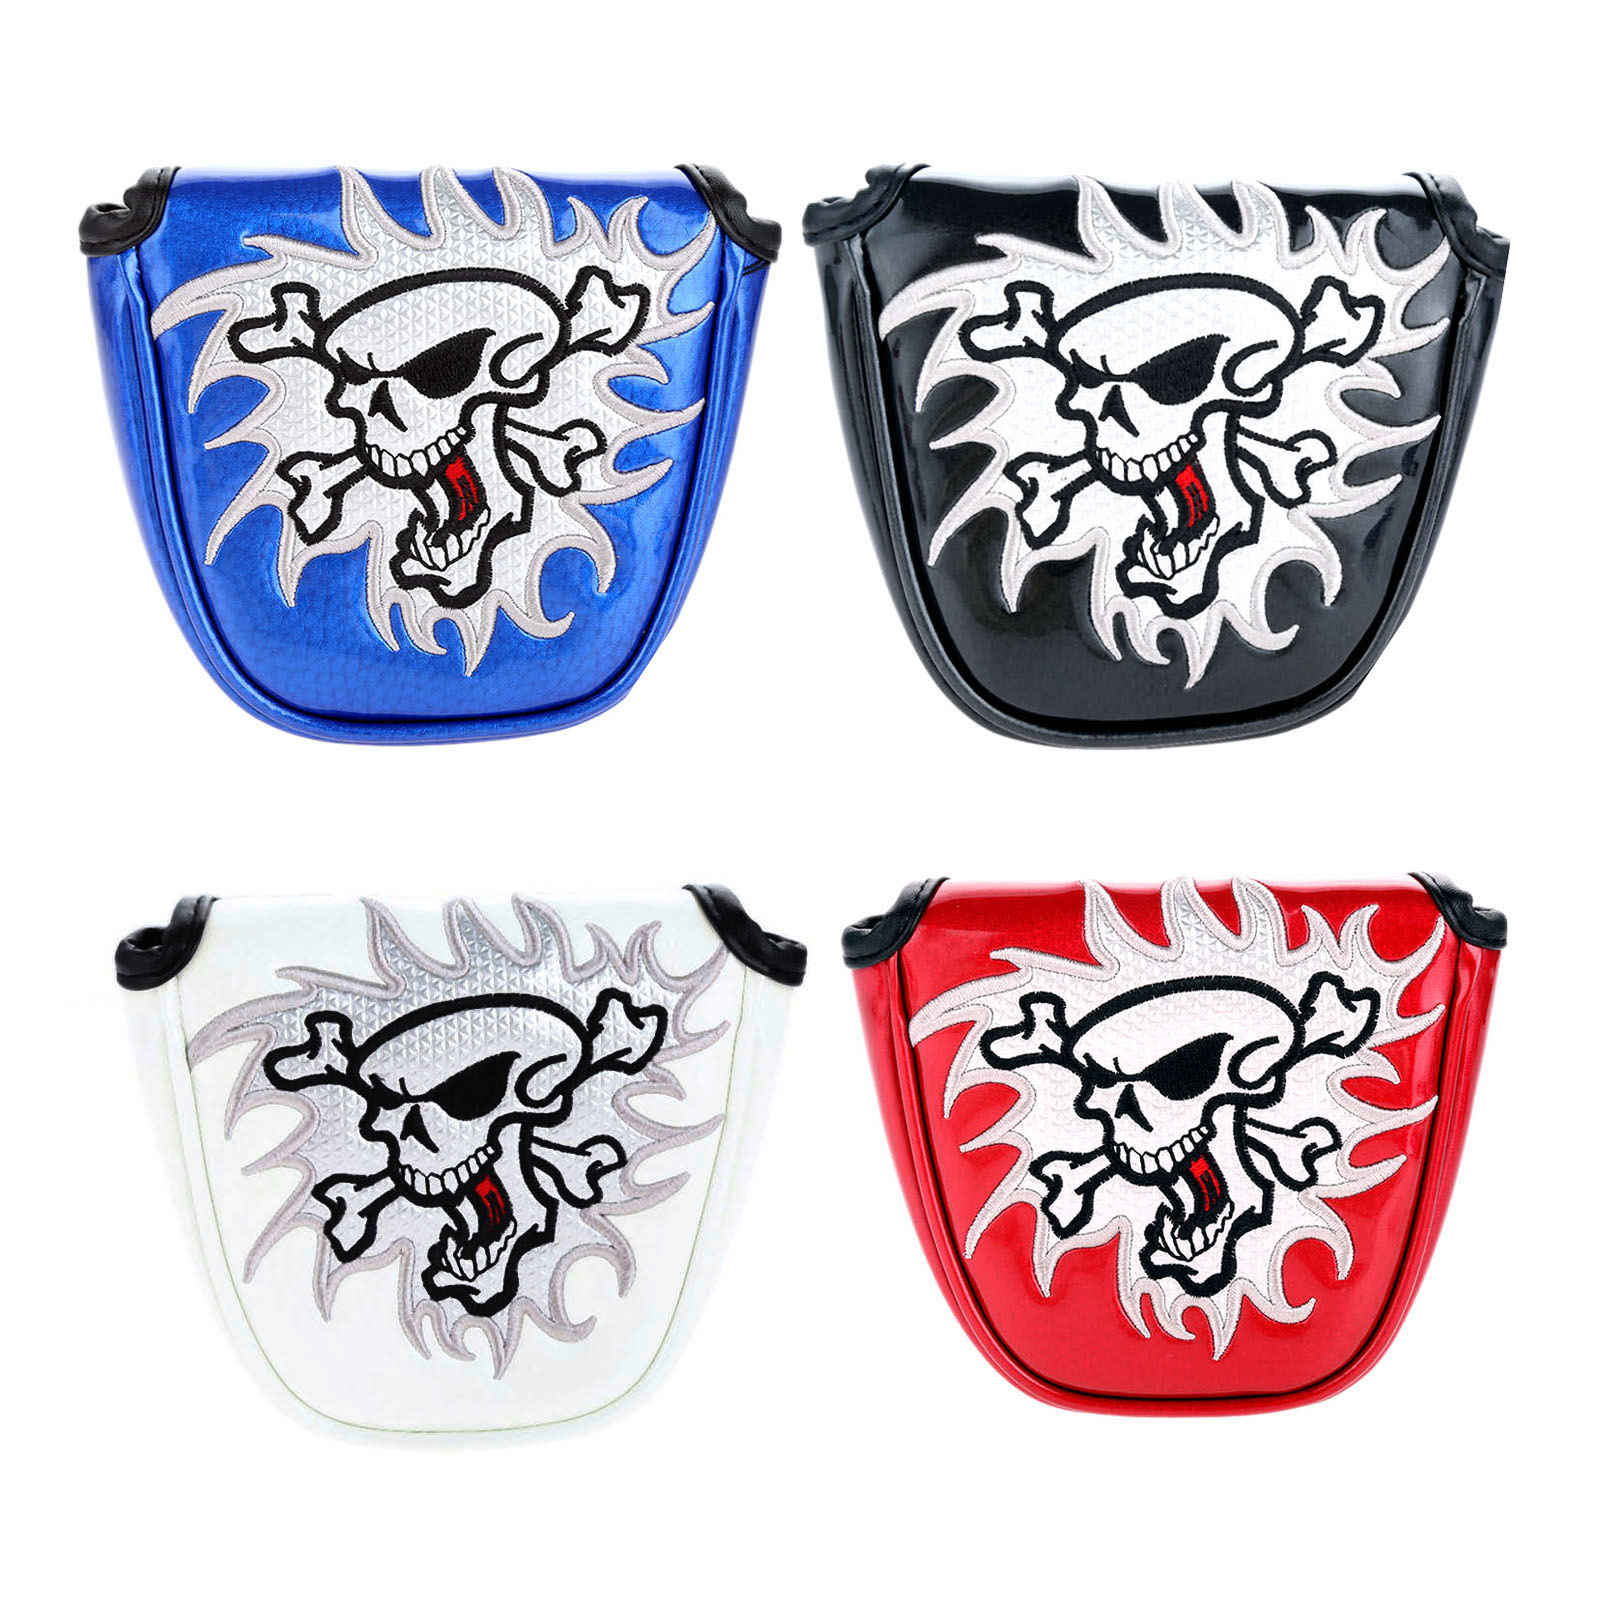 1Pc Semi-circle Golf Mallet Putter Cover Headcover Golf Club Blade Putter Heads Cover Protector Bag With Magnetic Closure